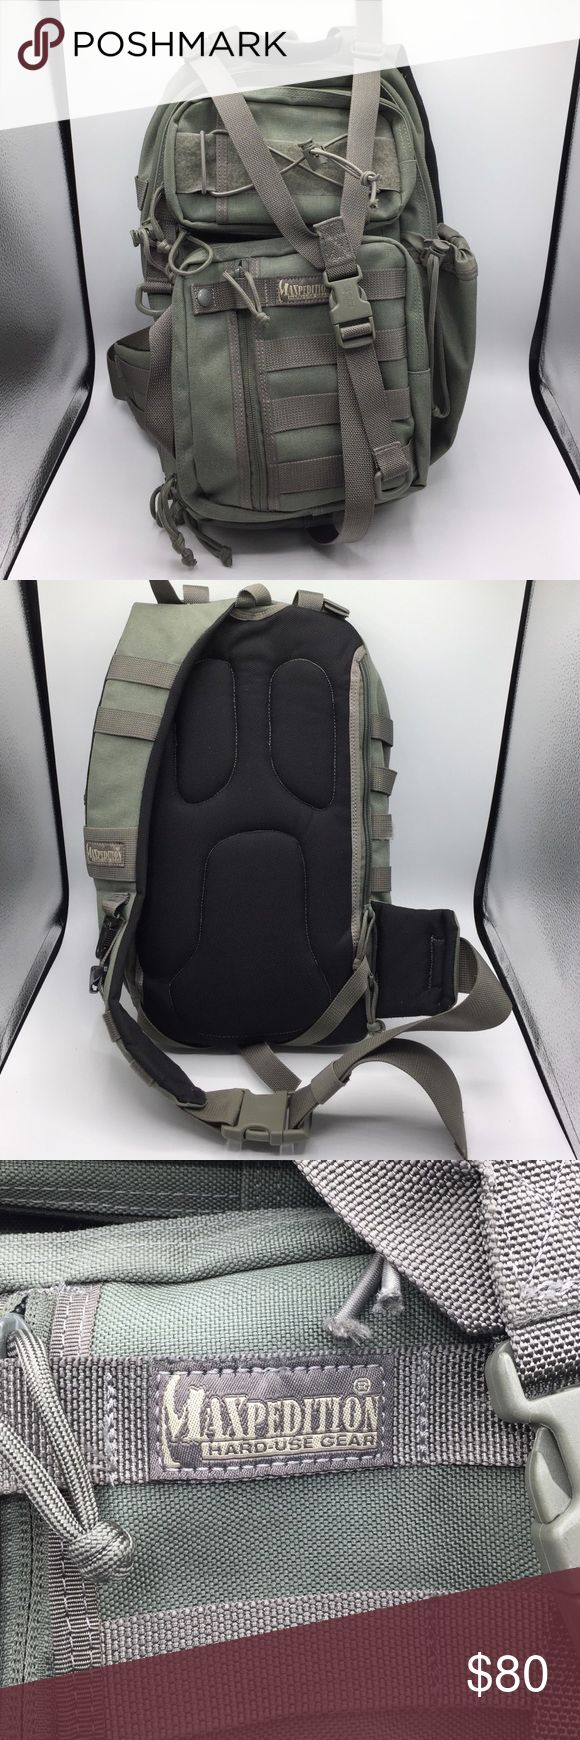 "Maxpedition Sitka S-type sling backpack. Maxpedition Sitka S-type sling backpack. Excellent condition. Has lots of compartments and pockets. Overall measurement is 16"" tall, 11"" wide, 5"" deep. This is a rough measurement. maxpedition Bags Backpacks"